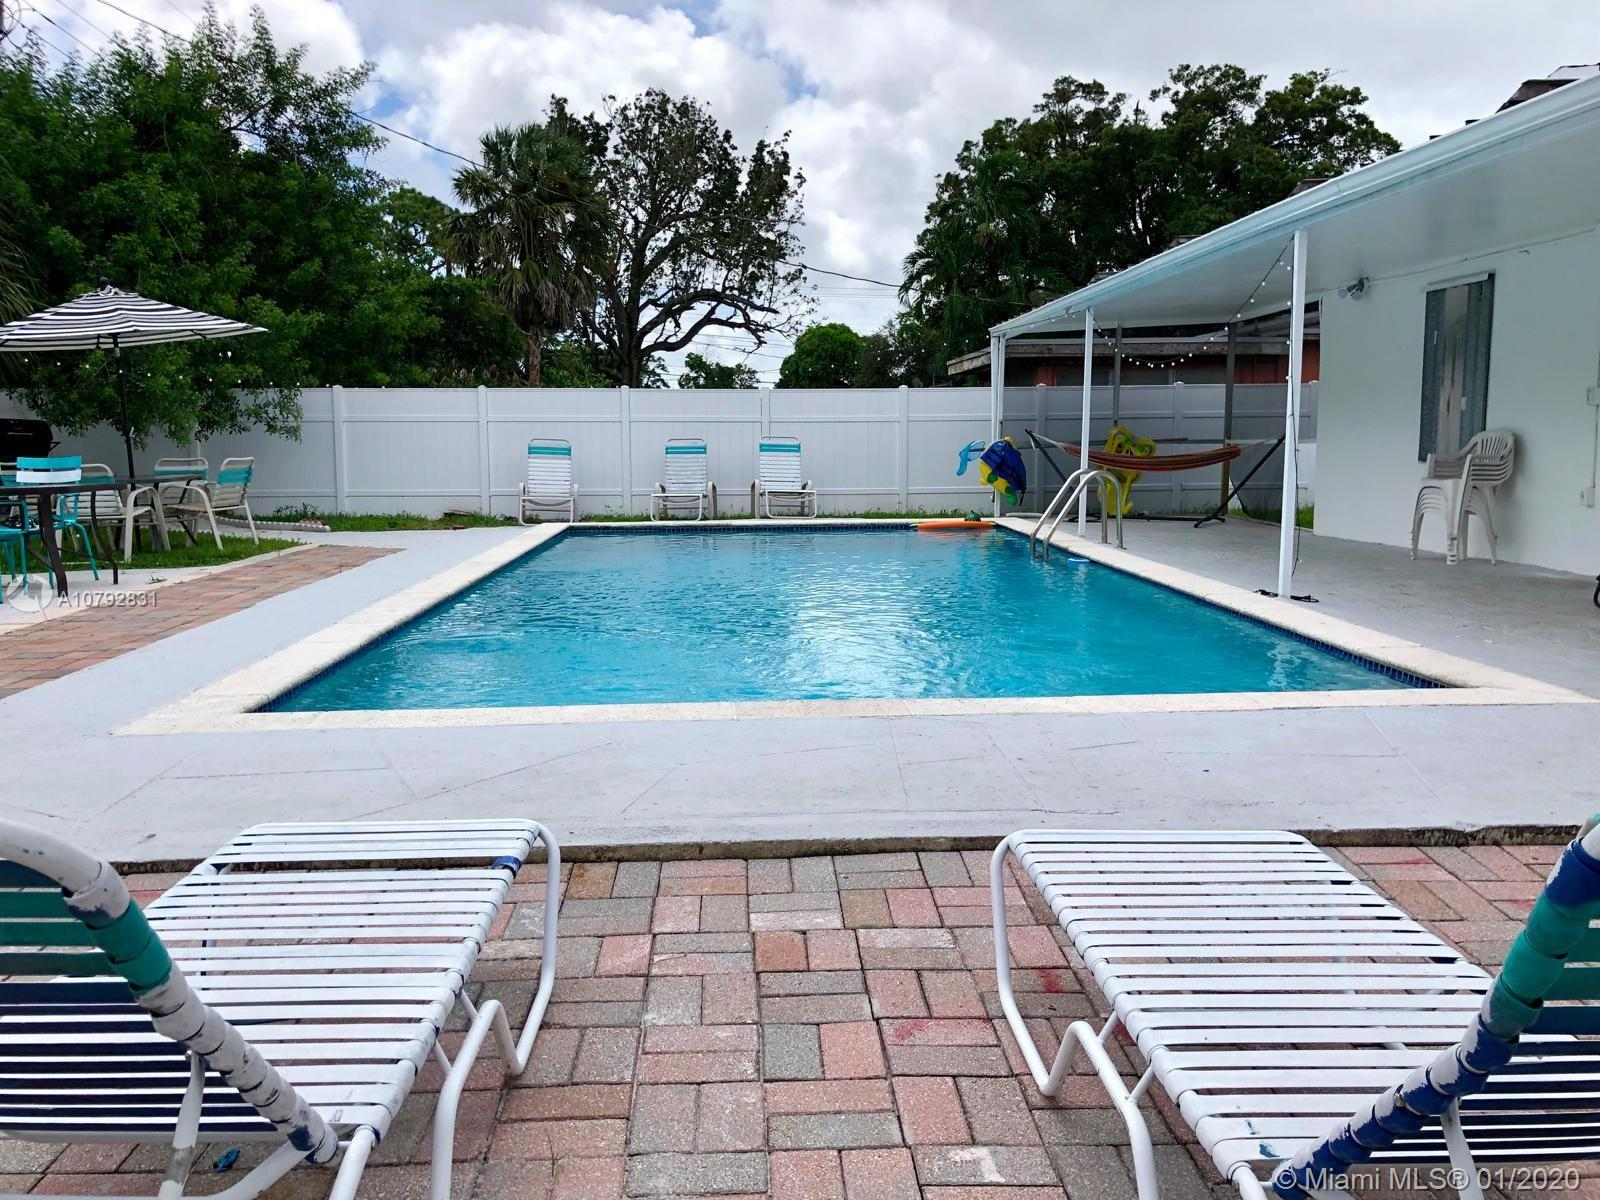 Welcome to YOUR NEW HOME! Come see this beautifully updated 3 bed/1 bath pool home located in a quie